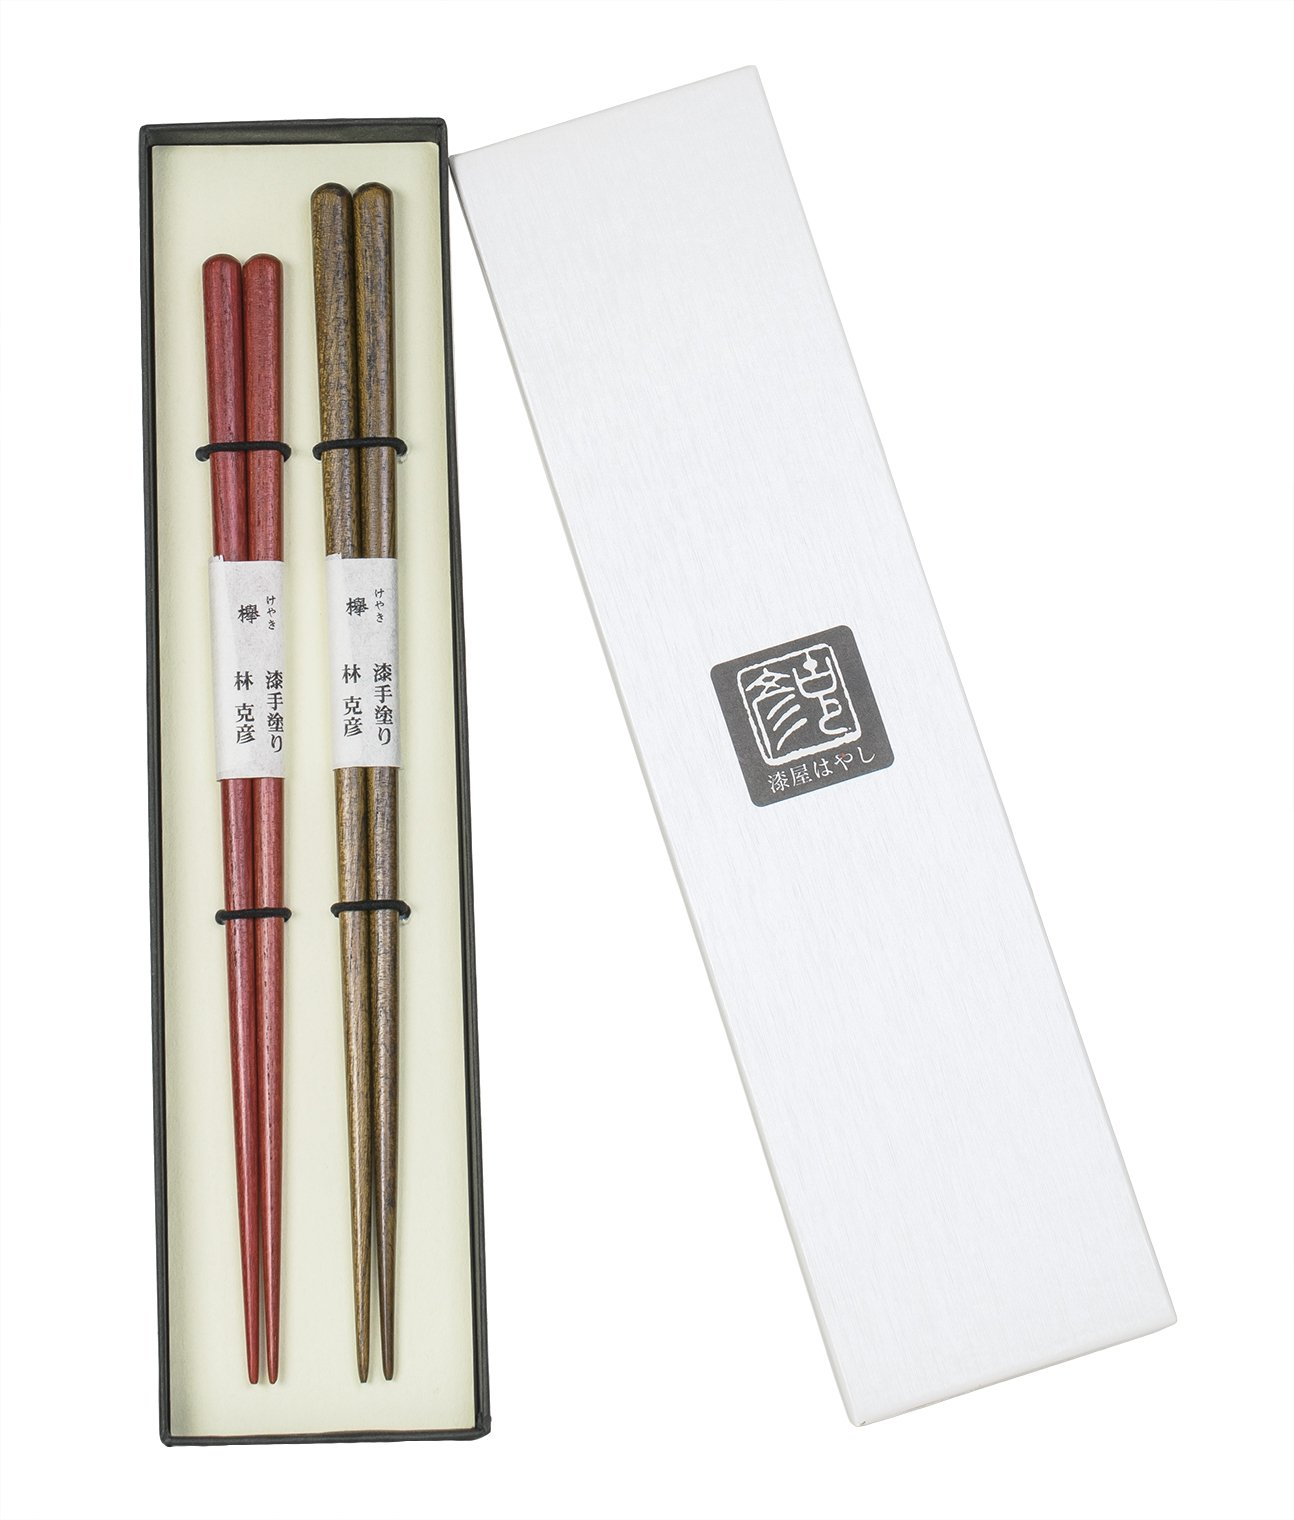 Laquered Natural Wooden Chopsticks 2 Pairs in Gift Box, Handcrafted in Japan (Keyaki)